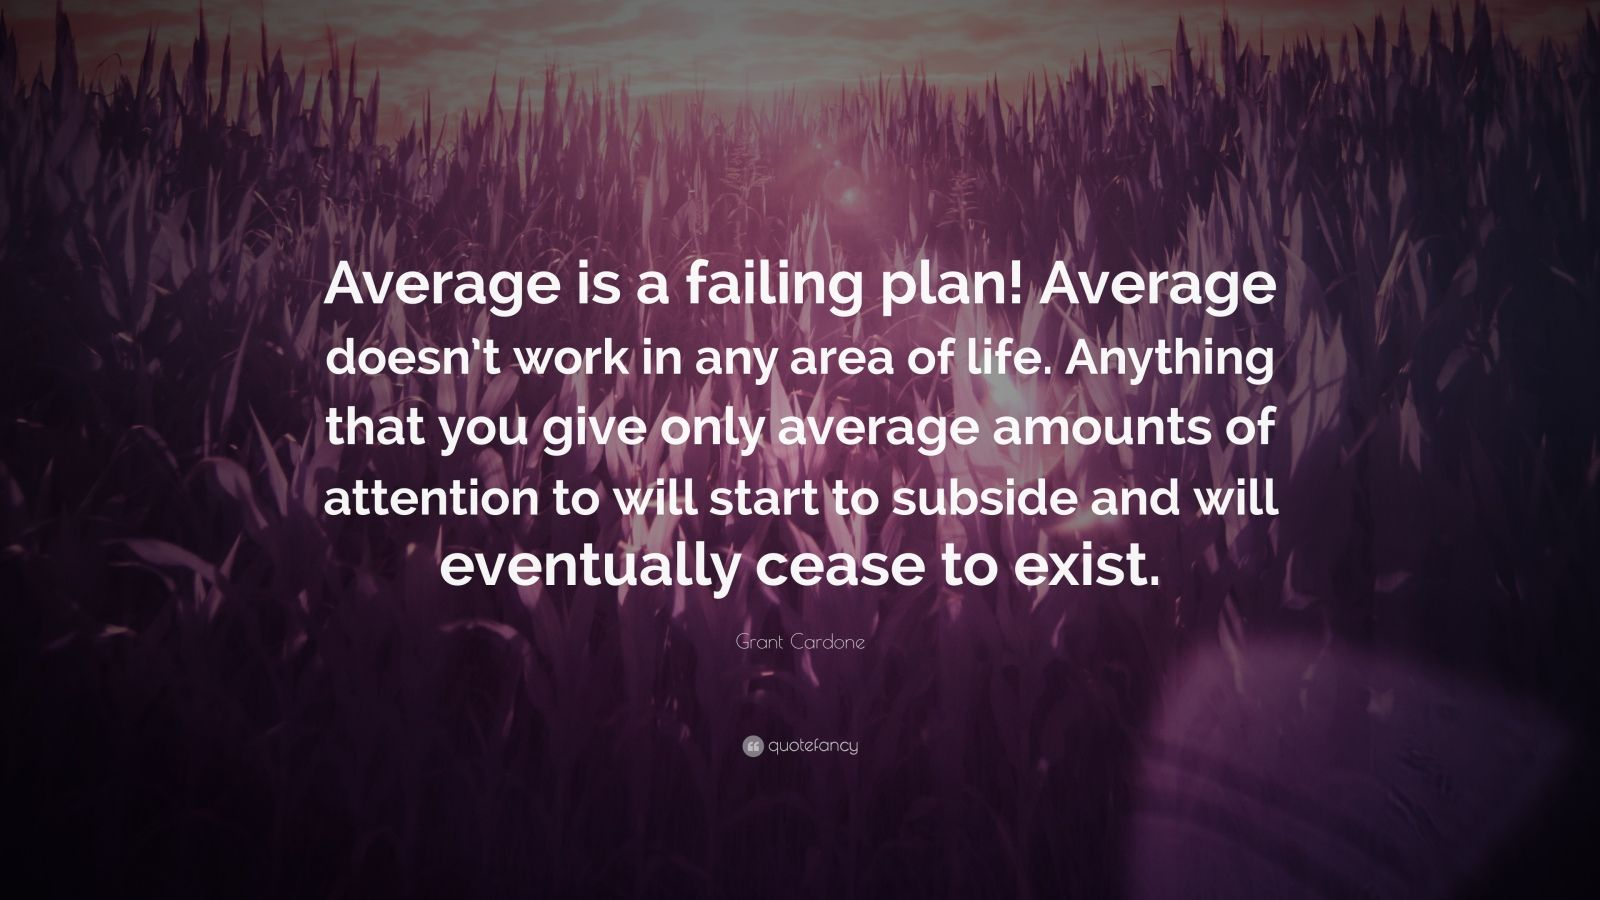 """Grant Cardone Quote: """"Average is a failing plan! Average doesn't work in any area of life. Anything that you give only average amounts of attention to will start to subside and will eventually cease to exist."""""""